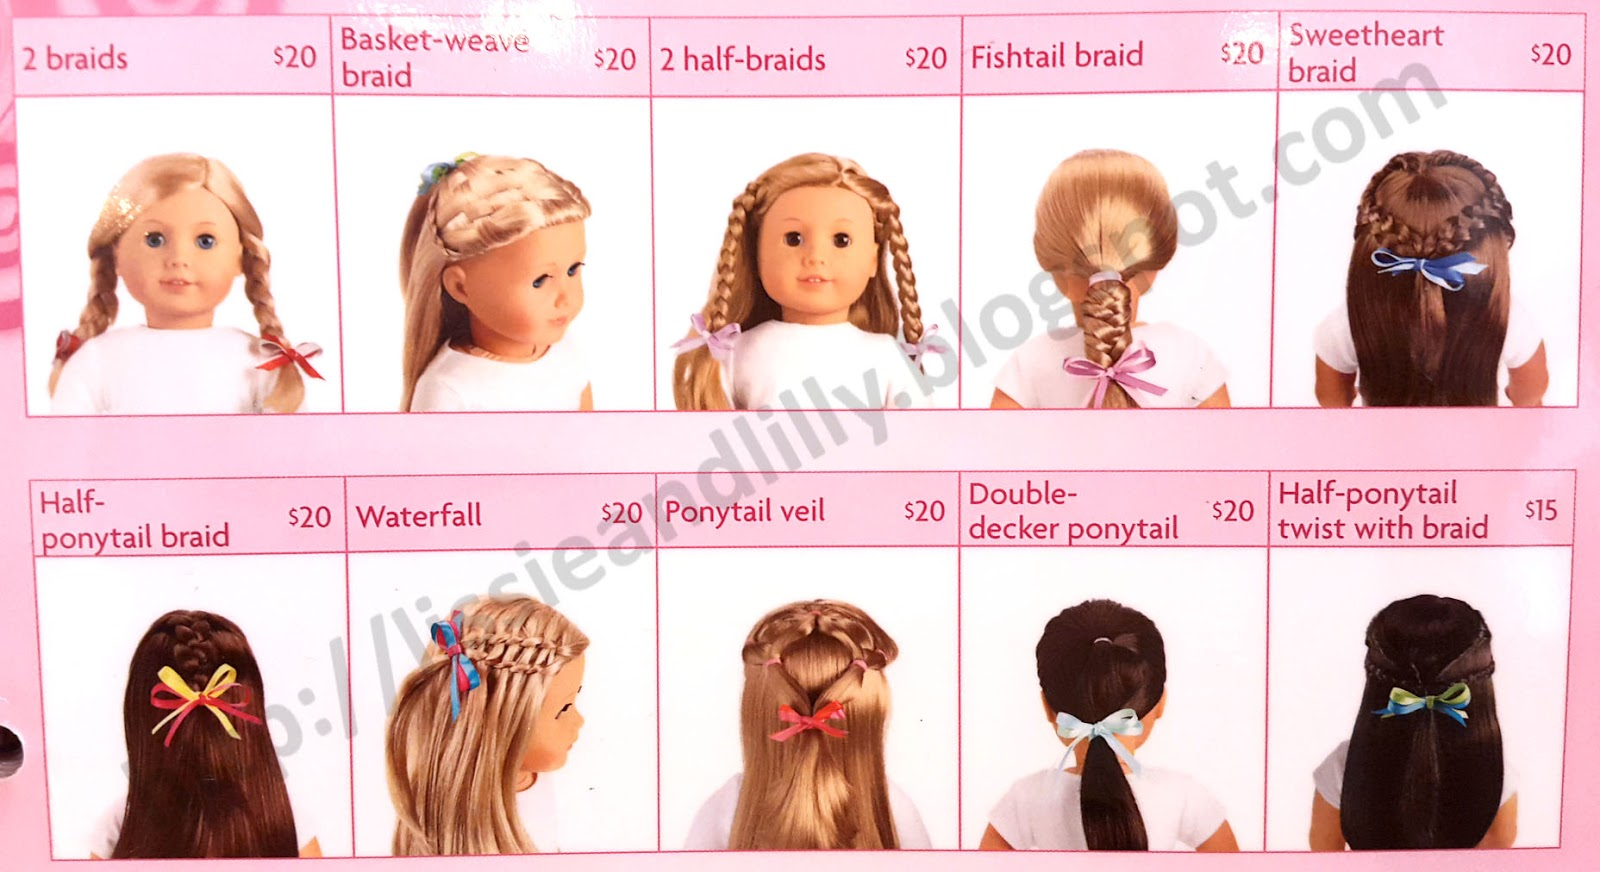 Lissie Lilly AG Salon Hairstyles - Hairstyles for dolls with long hair